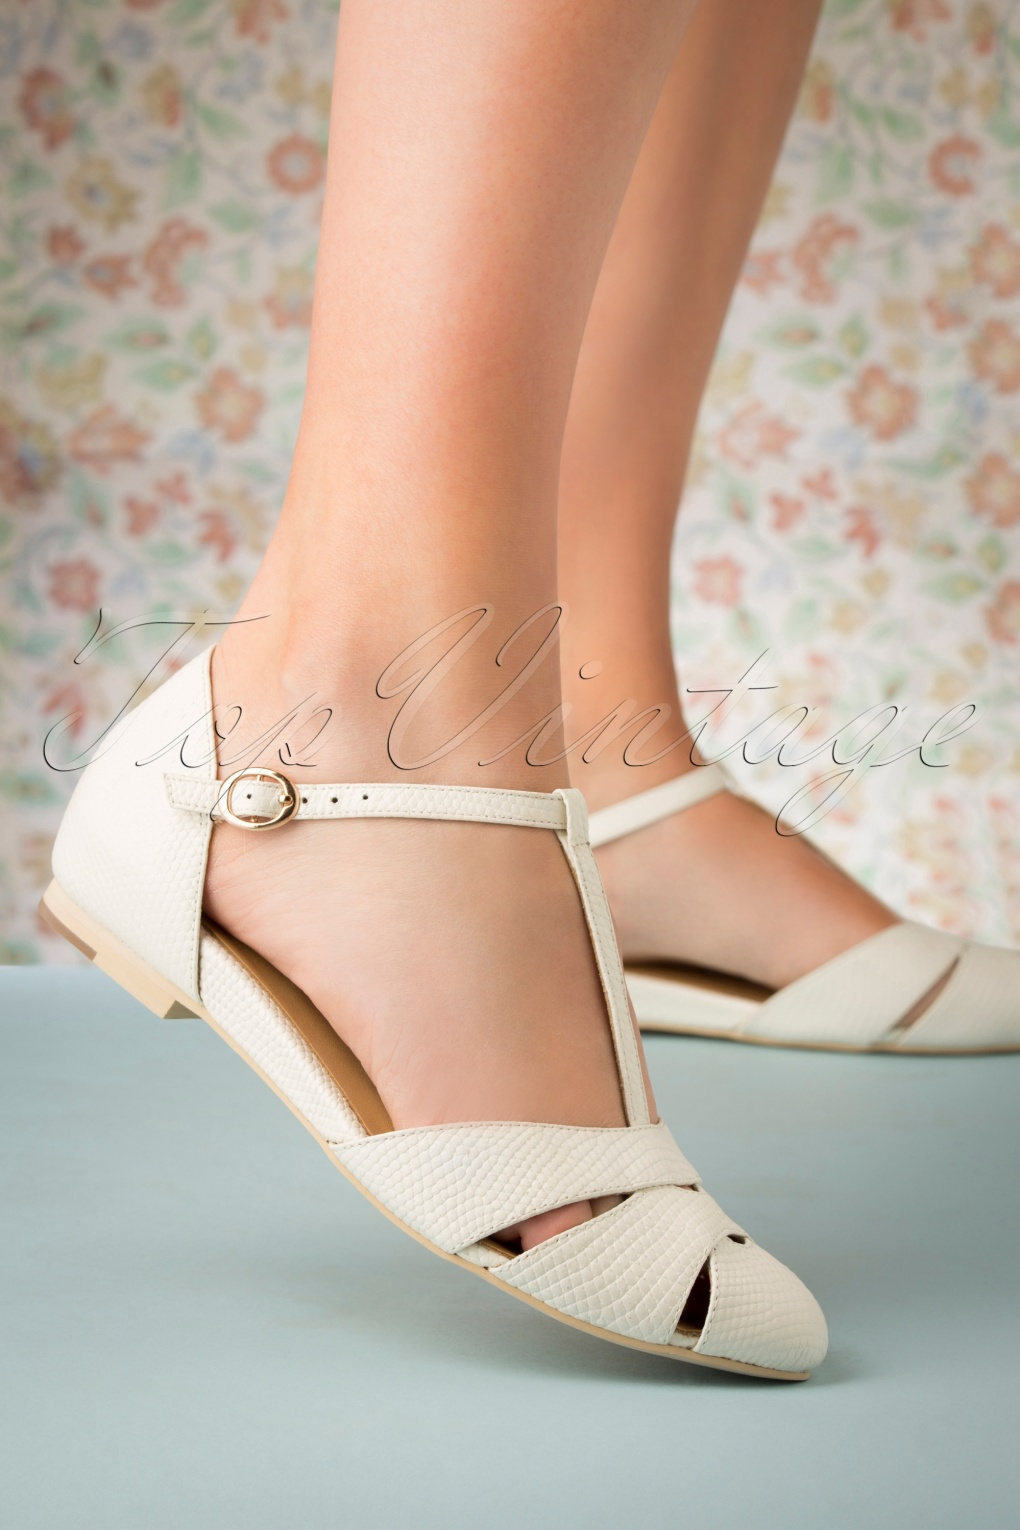 Retro Vintage Flats and Low Heel Shoes 50s Sardinia T-Strap Flats in Ivory £19.95 AT vintagedancer.com